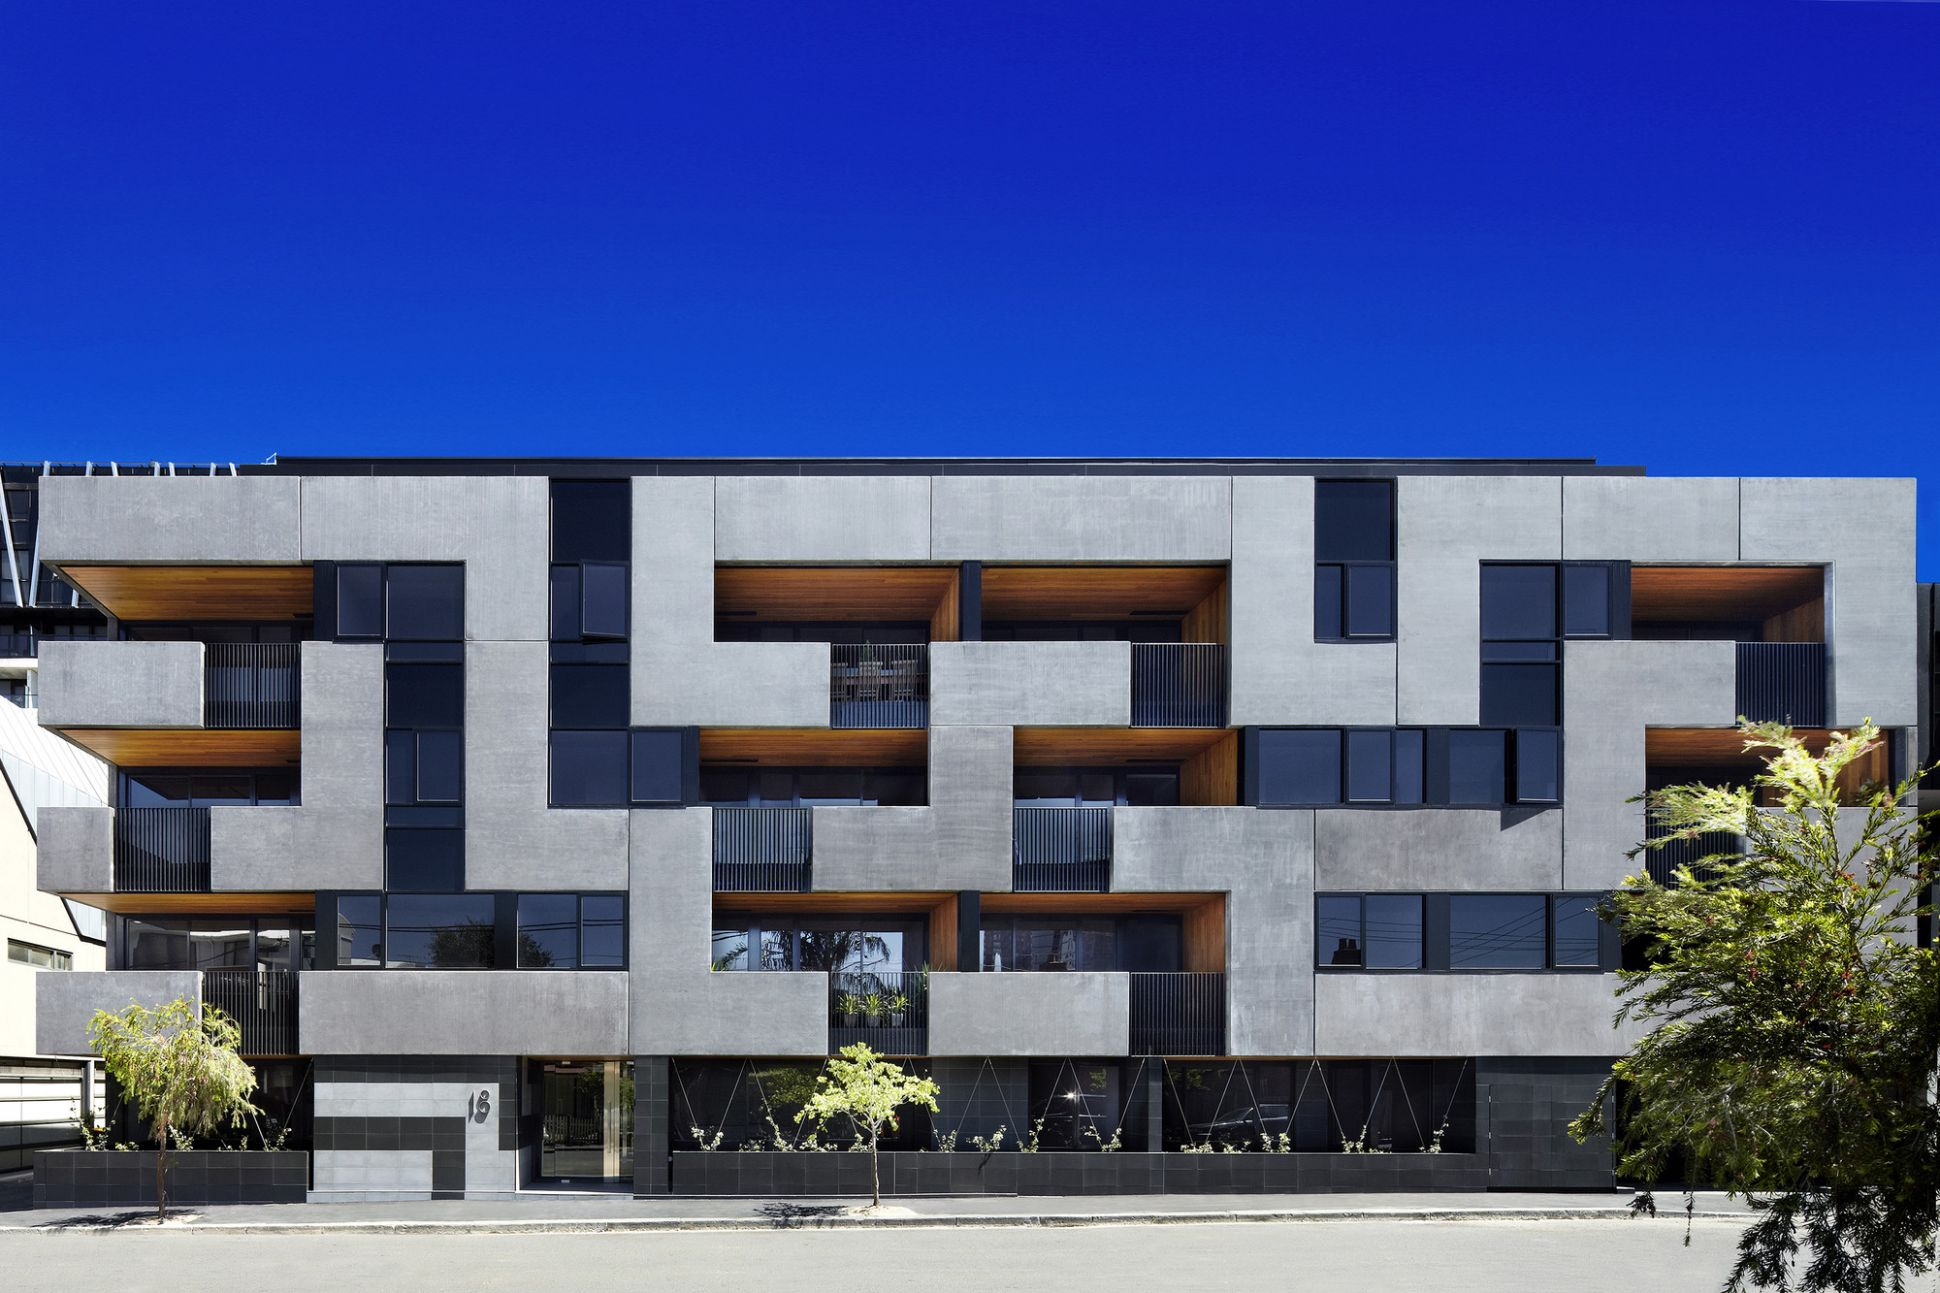 Apartments architecture and design by CHT Architects in Australia ...